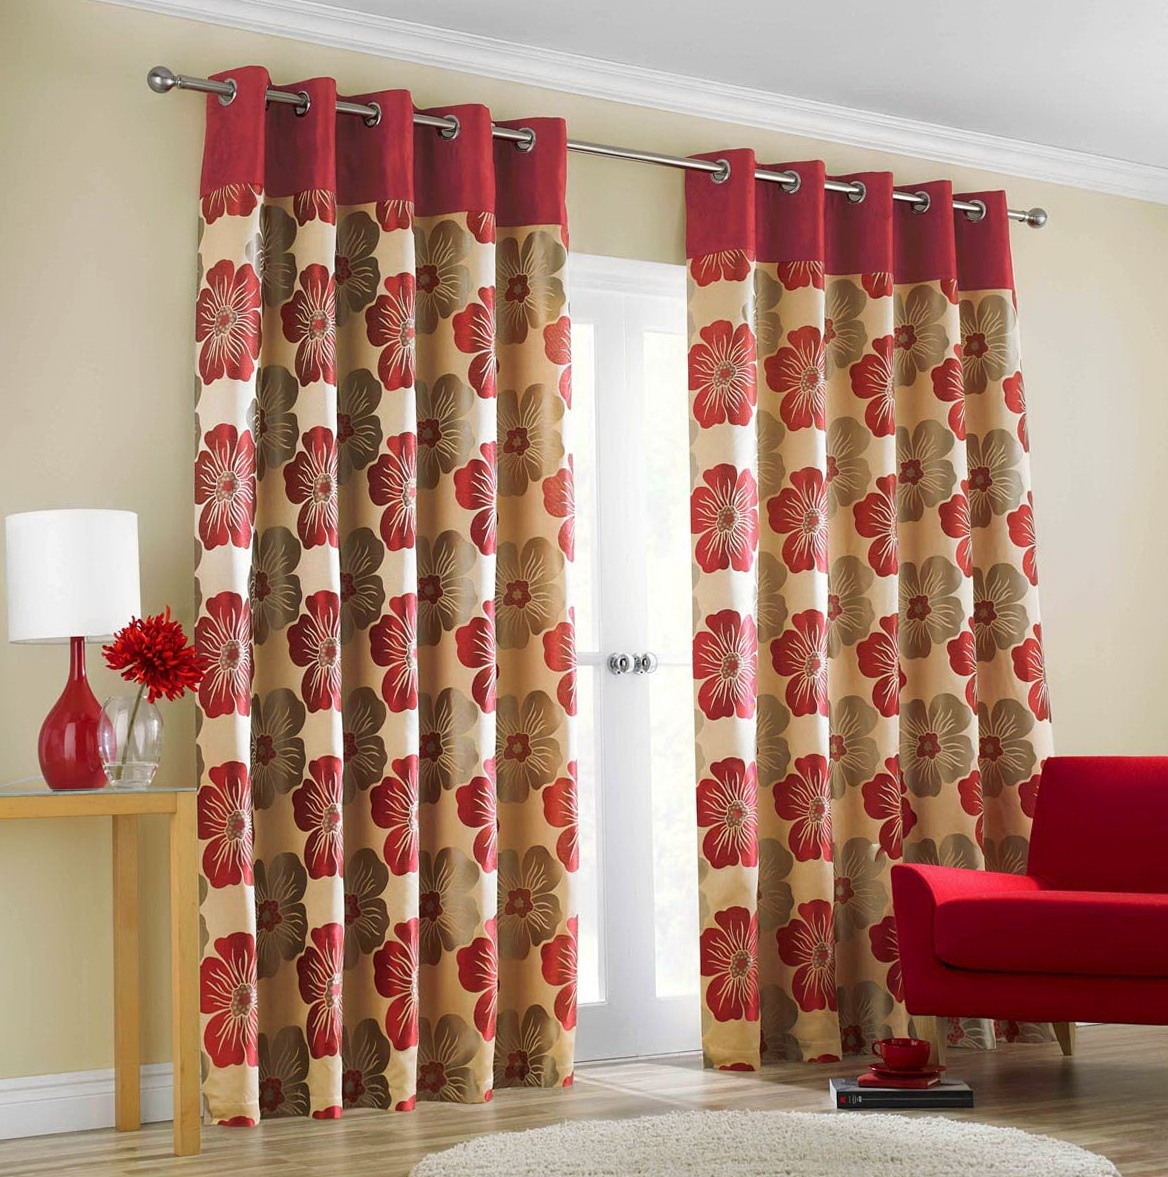 soft furnishings – creating the perfect curtain set within Perfect Curtain For Your Home